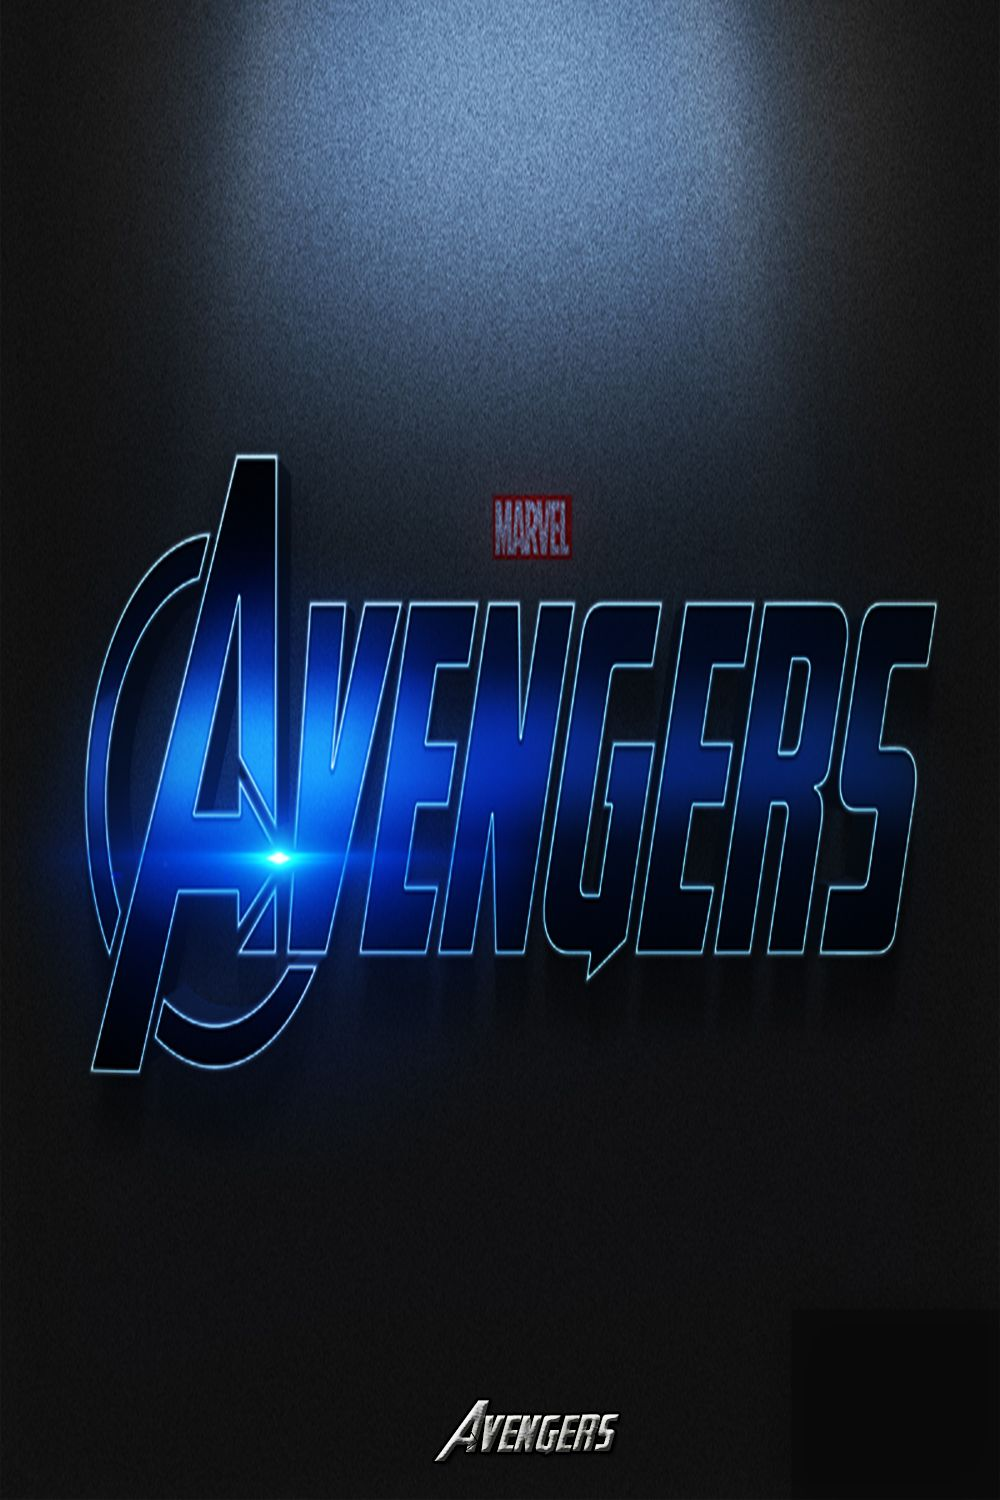 Avengers Wallpaper For Android Hd Free Download In 2020 Avengers Wallpaper Iphone Wallpaper Hd Cool Wallpapers